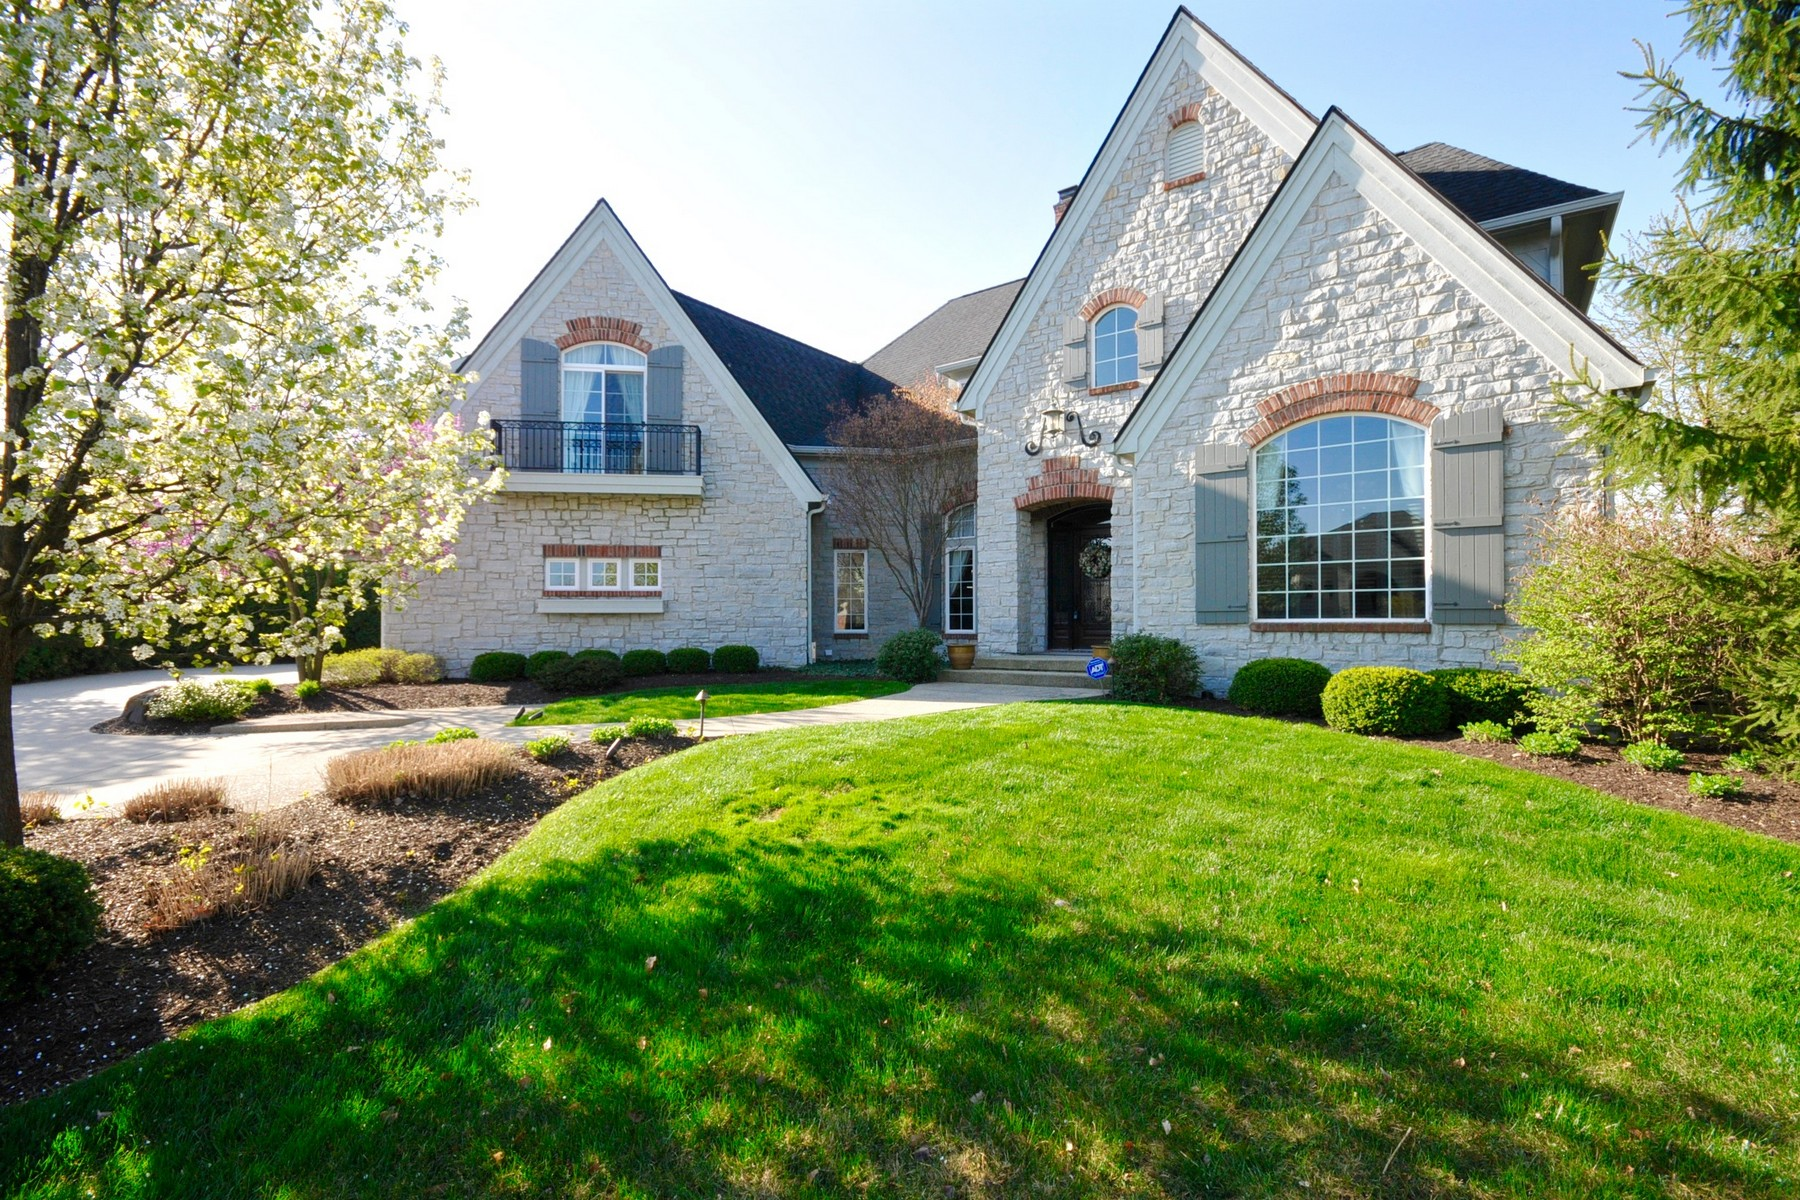 Single Family Home for Sale at French Country Luxury Cottage 3809 Falls Cir Carmel, Indiana 46033 United States